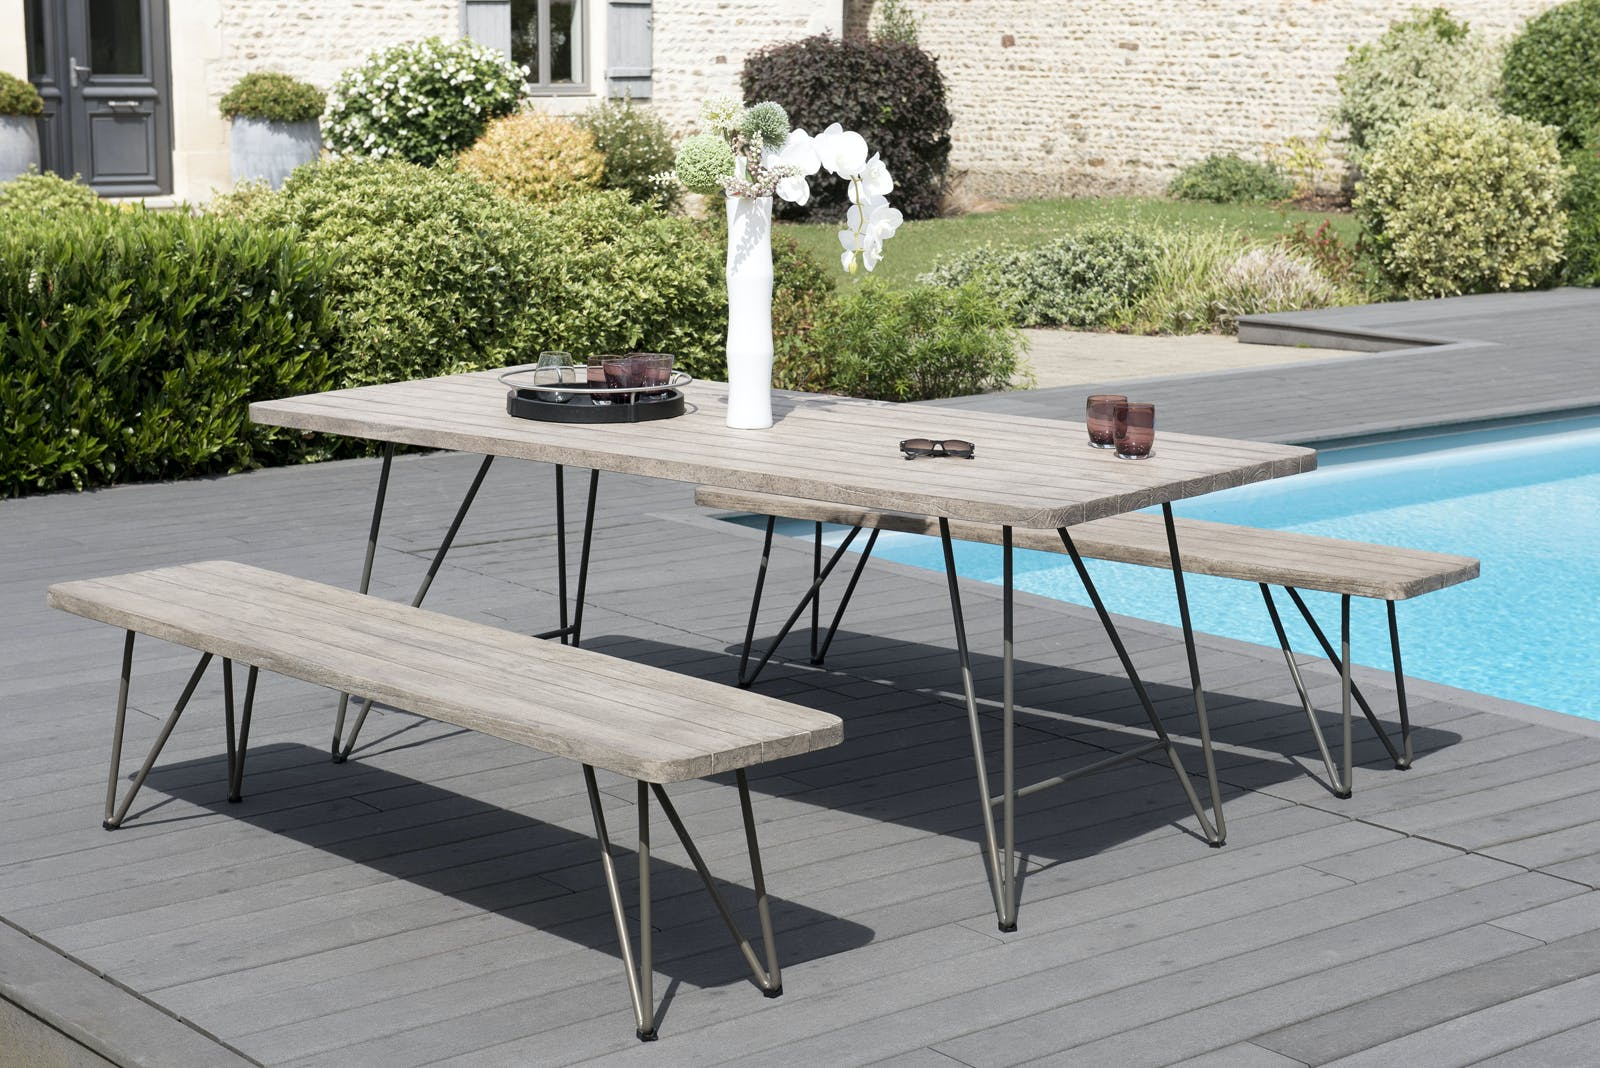 Salon de Jardin Table Teck 200x90cm + 2 bancs DETROIT ref. 30020822